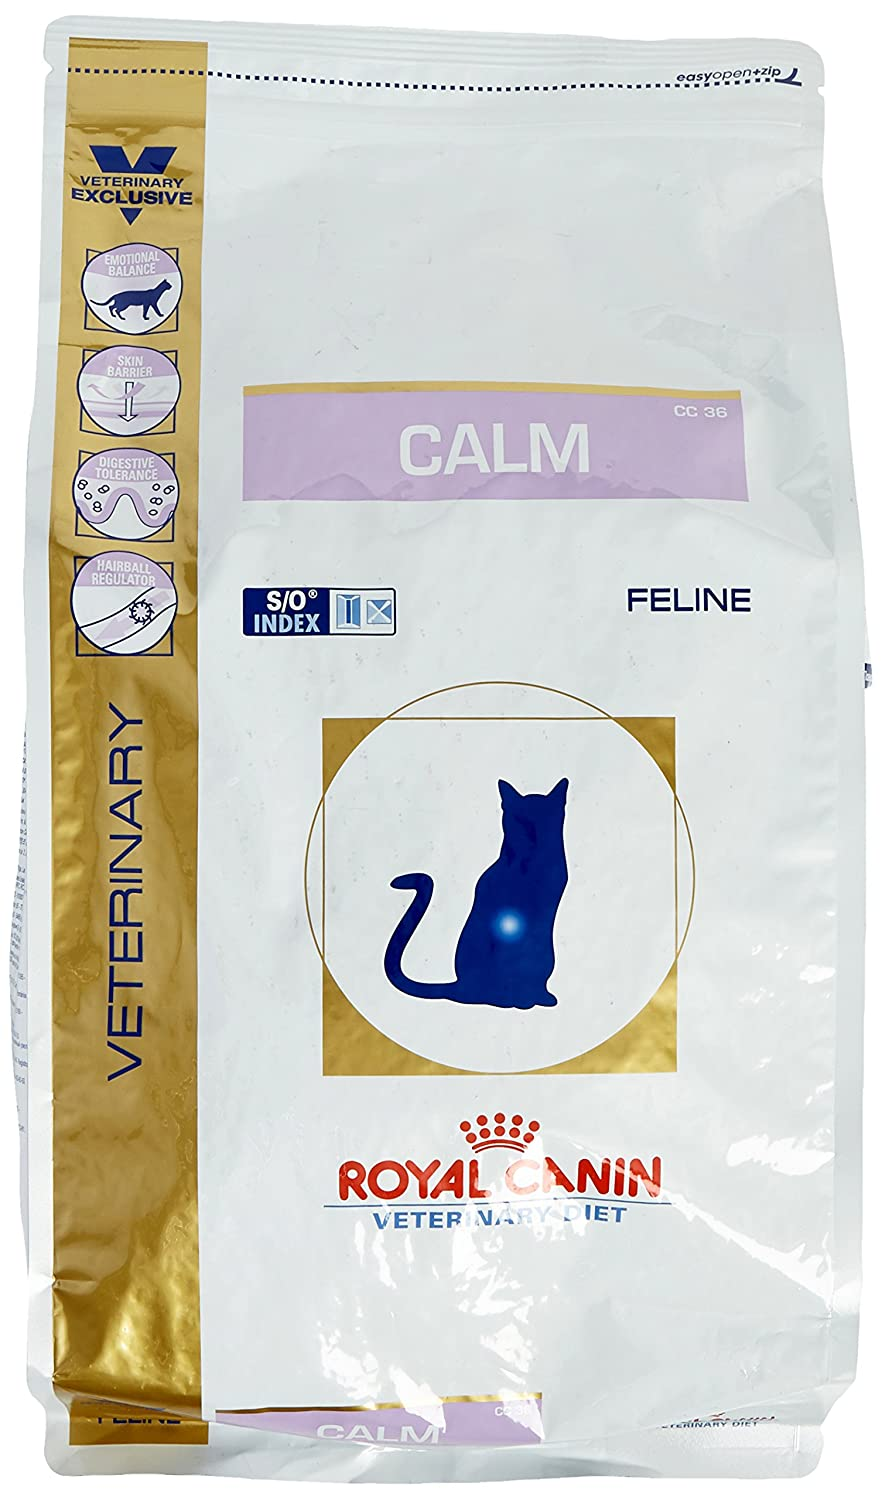 Royal Canin or Hills - what kind of food for your cat